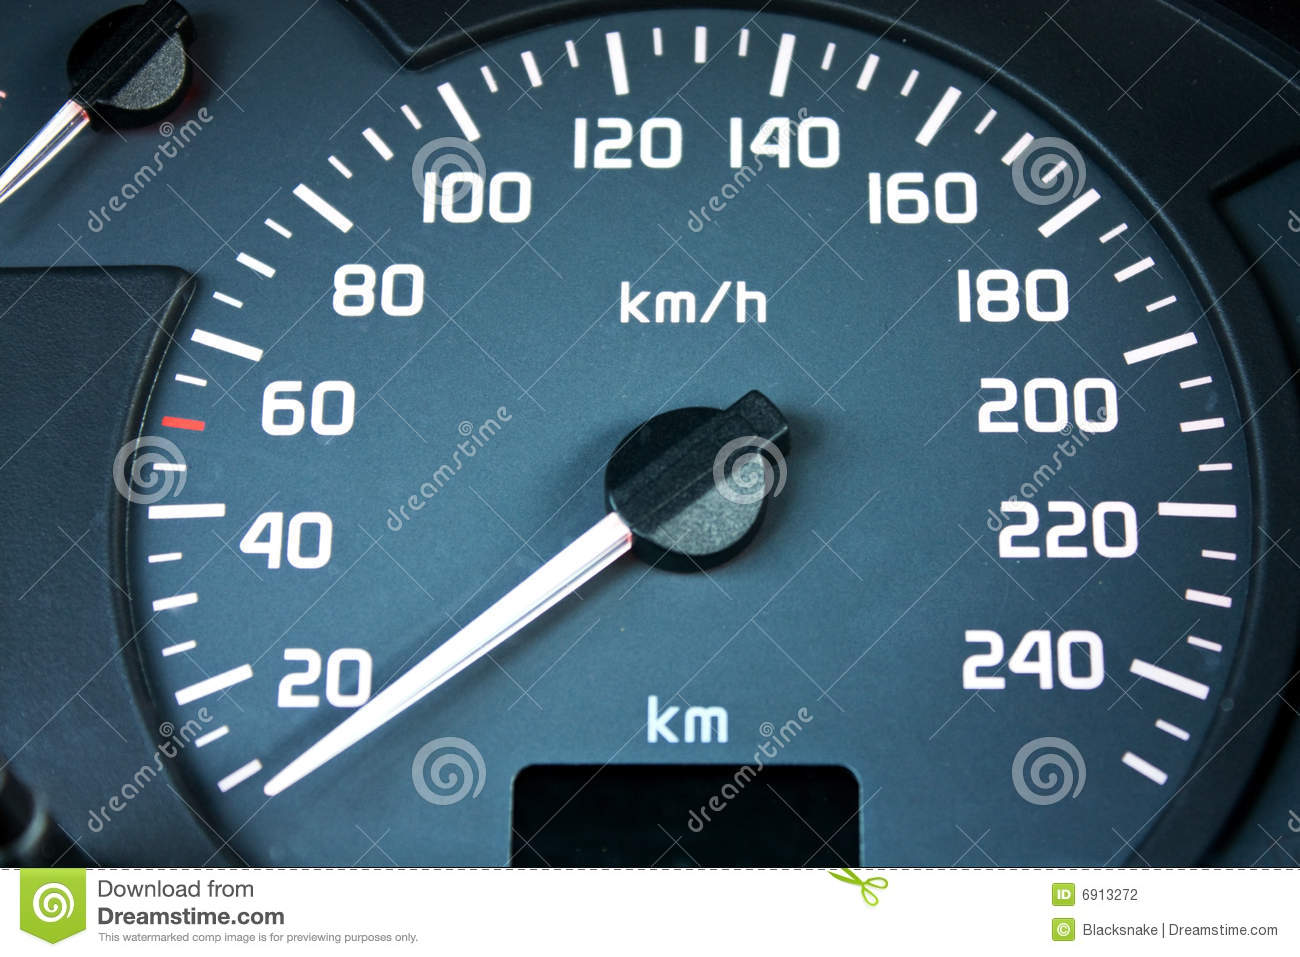 How To Sell A Car Fast >> Car dashboard speed meter stock photo. Image of racing - 6913272